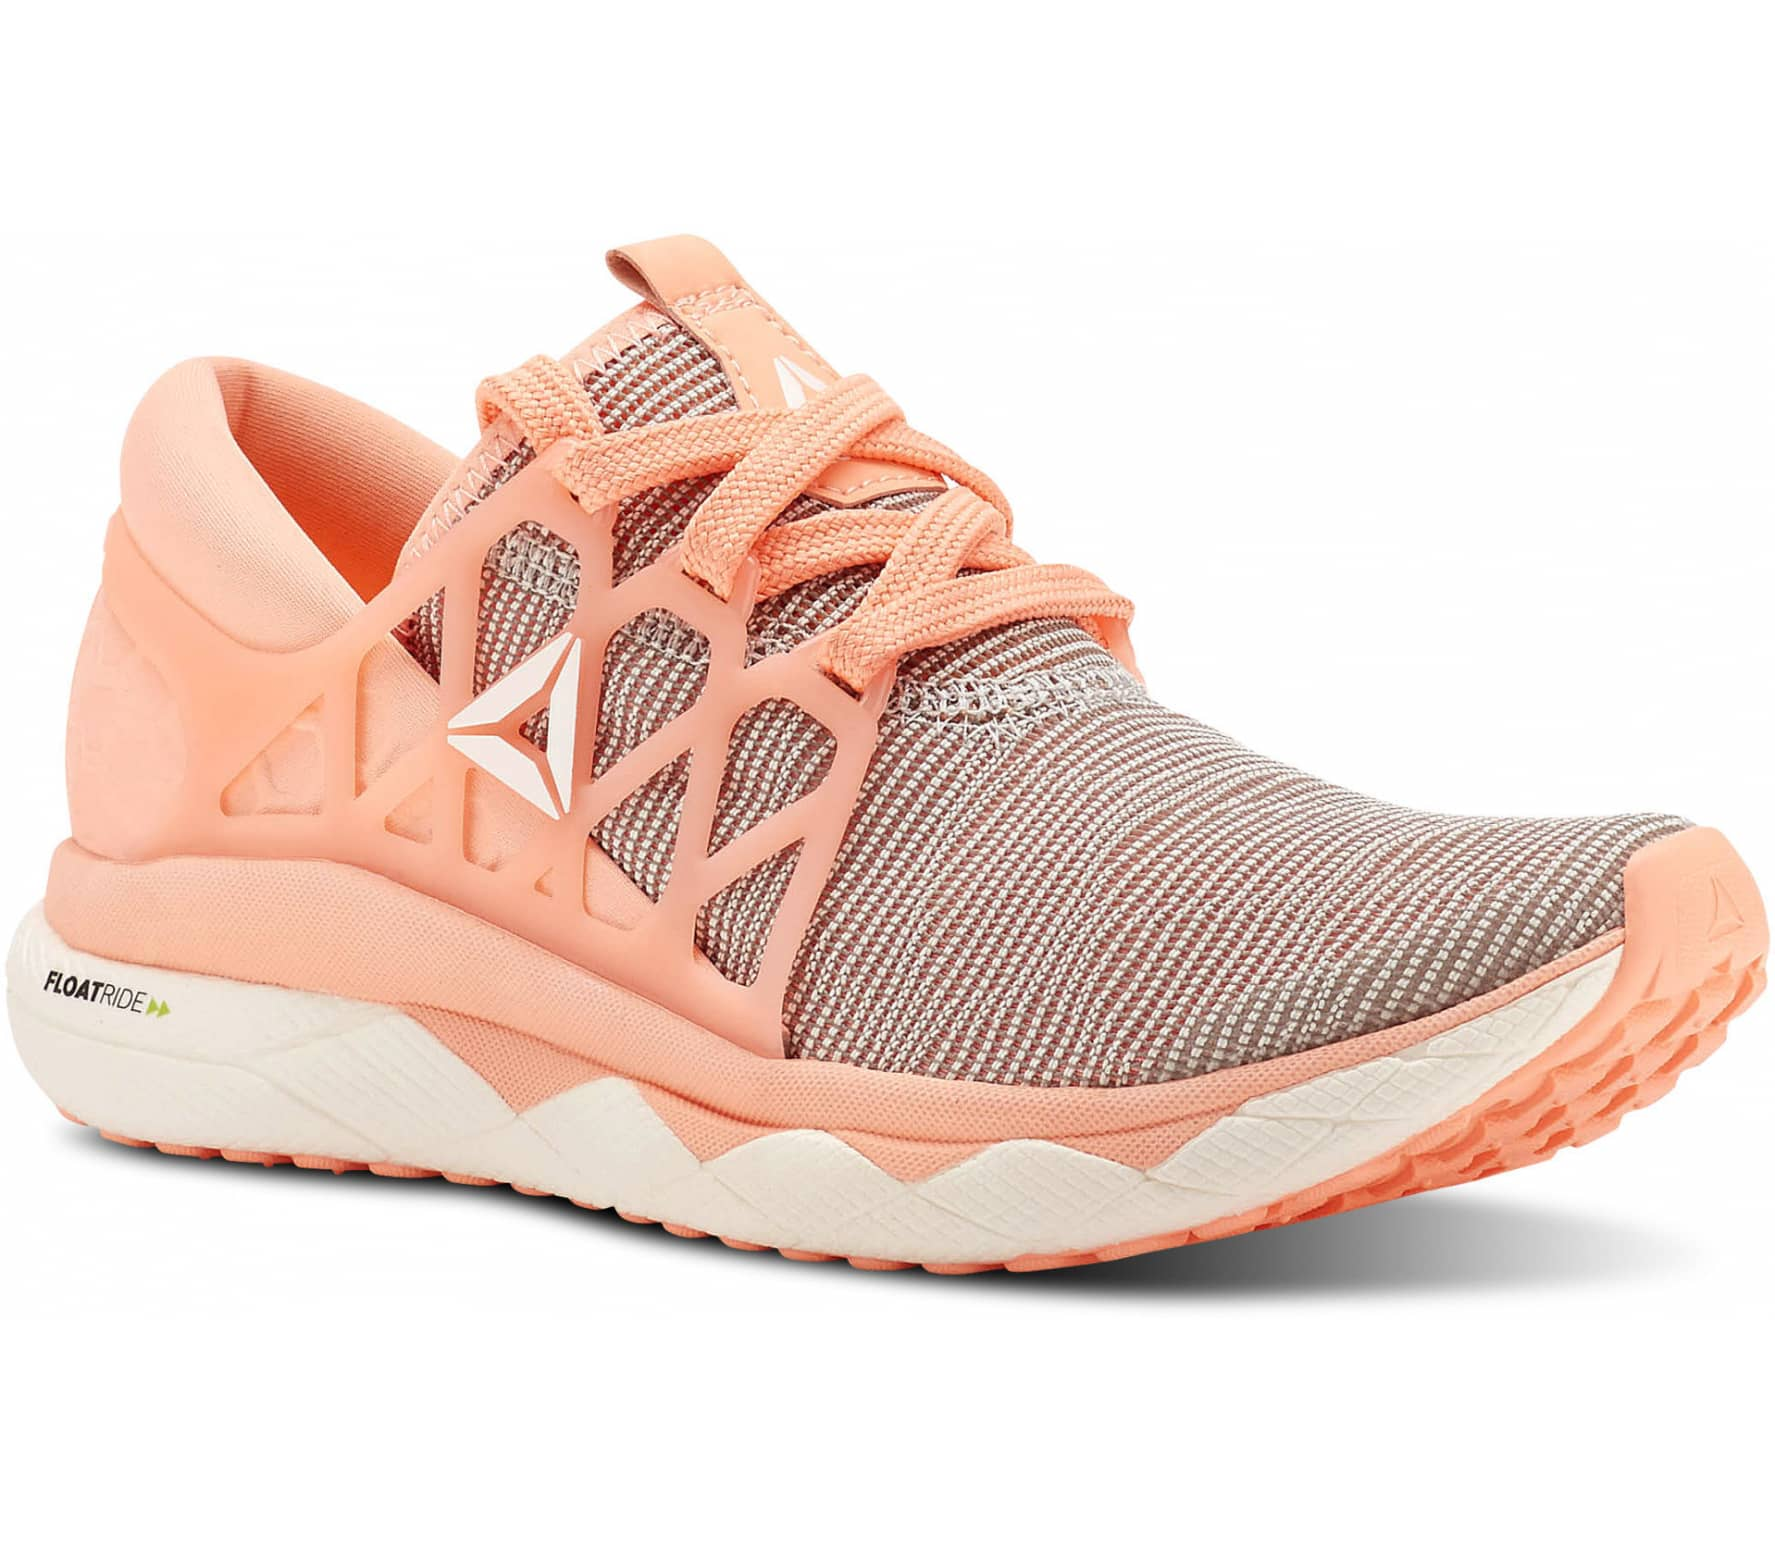 Reebok Floatride Flexweave Damen Laufschuh orange